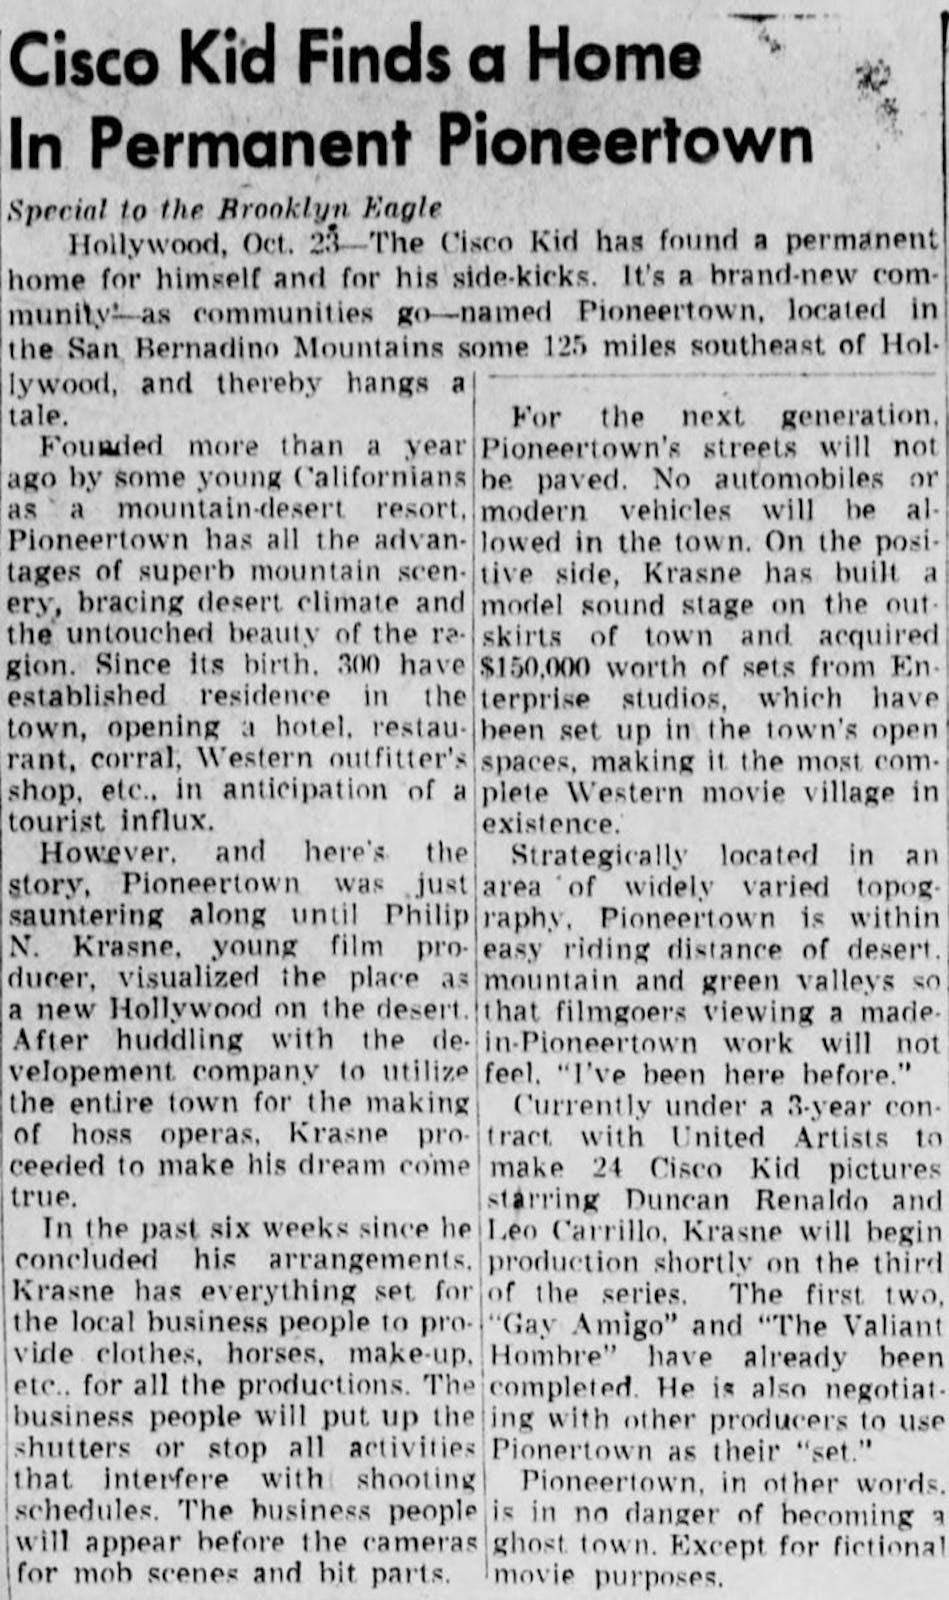 1948 Oct 24 - The Brooklyn Daily Eagle article clipping